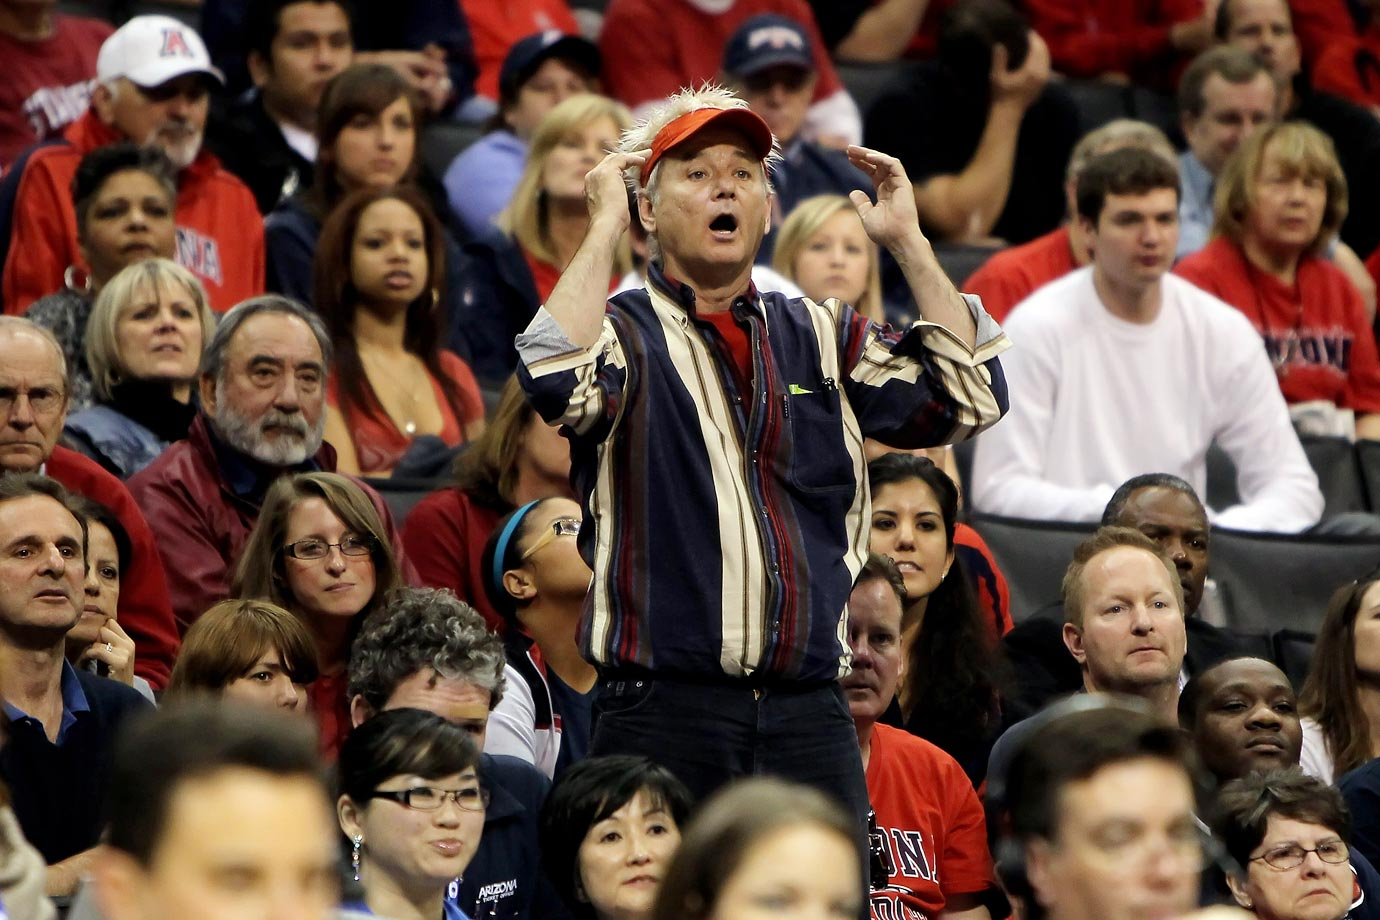 Bill Murray reacts during the Pac-10 Basketball Tournament quarterfinals between the Arizona Wildcats and the UCLA Bruins on March 11, 2010 at Staples Center in Los Angeles.